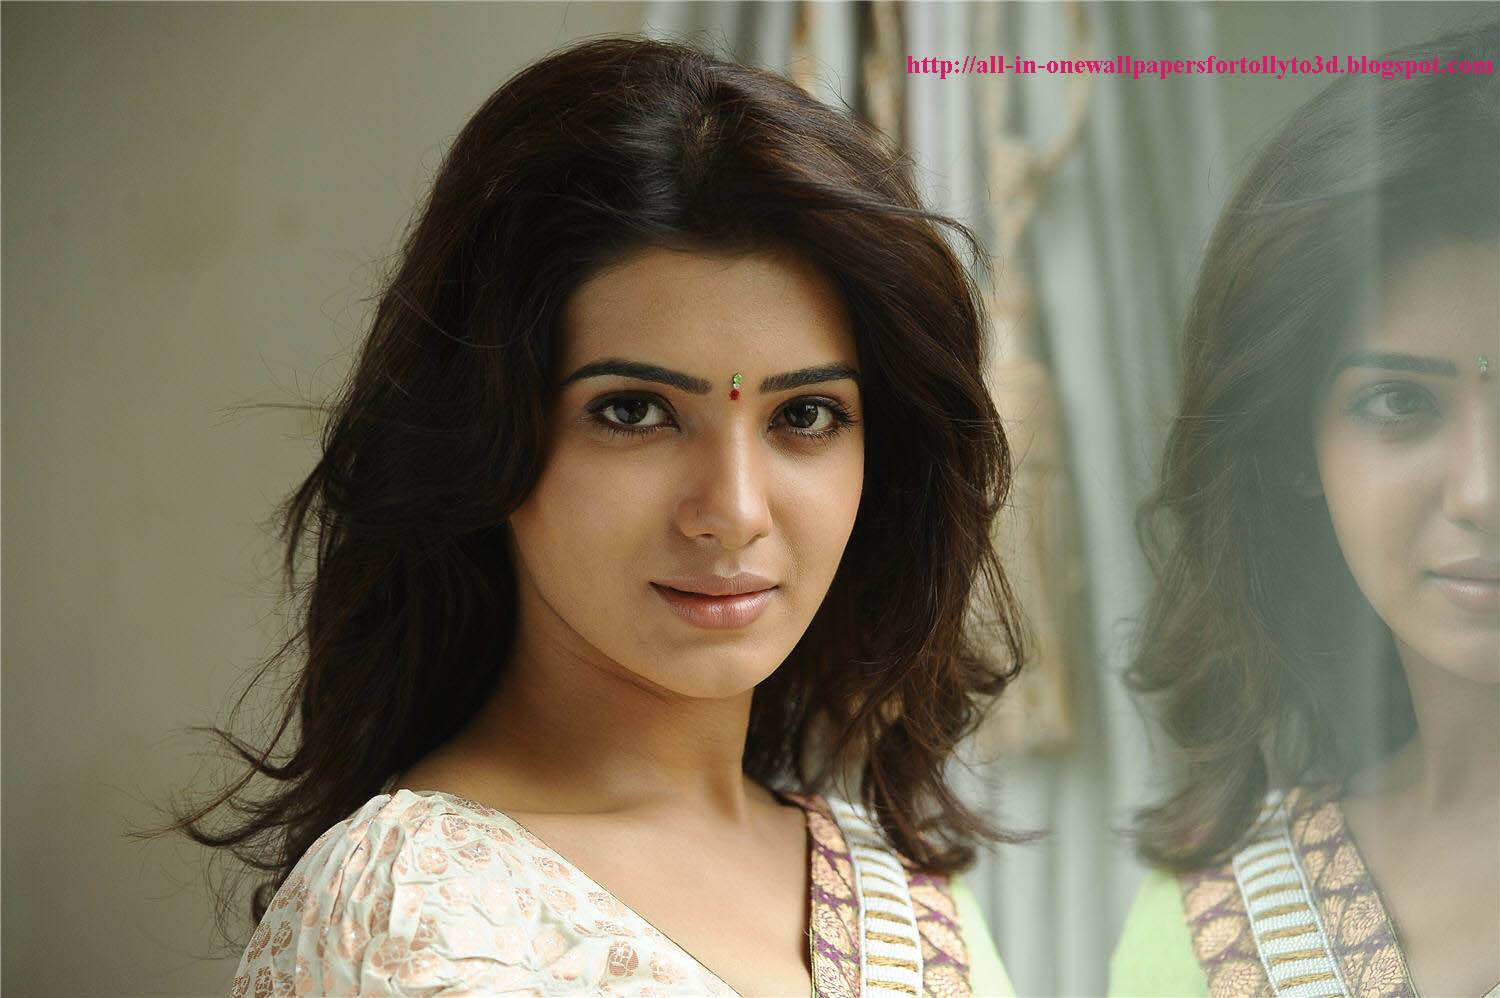 Tamil Actress Hd Wallpapers Free Downloads South Indian Top Heroine 1500x998 Wallpaper Teahub Io